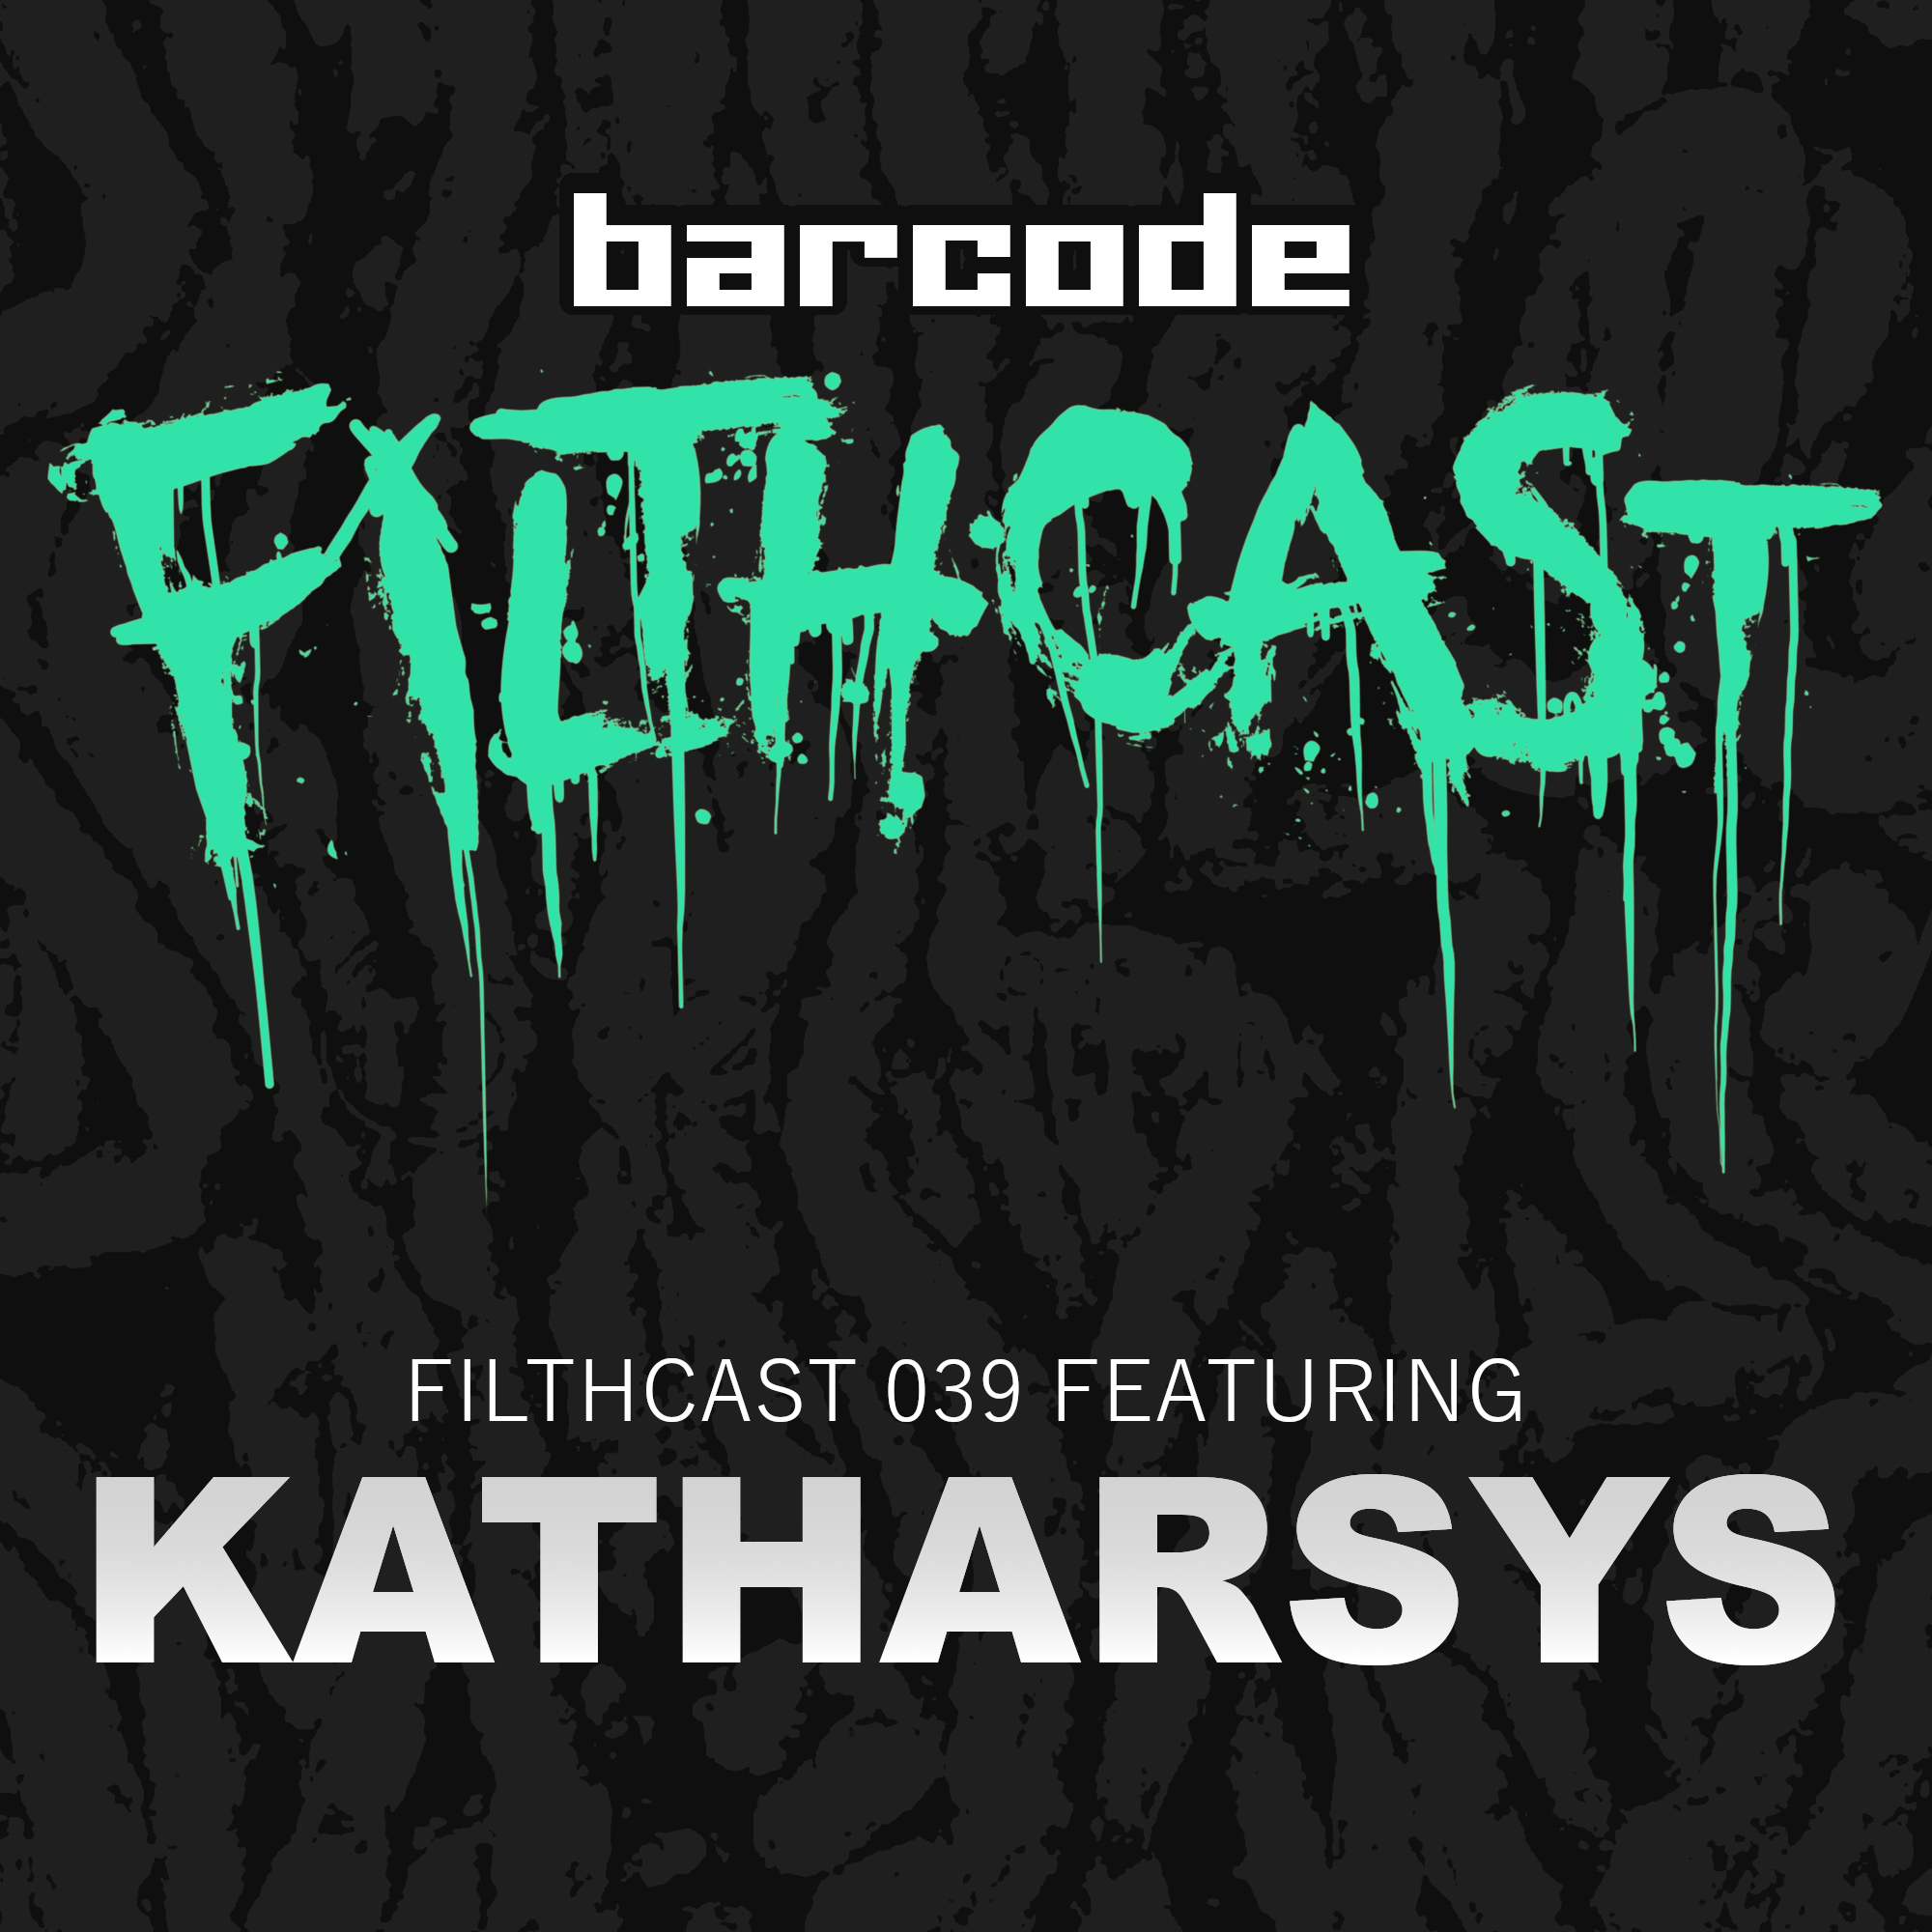 Katharsys return to the Filthcast with a mix featuring tracks from their Loudroom LP released on Barcode.